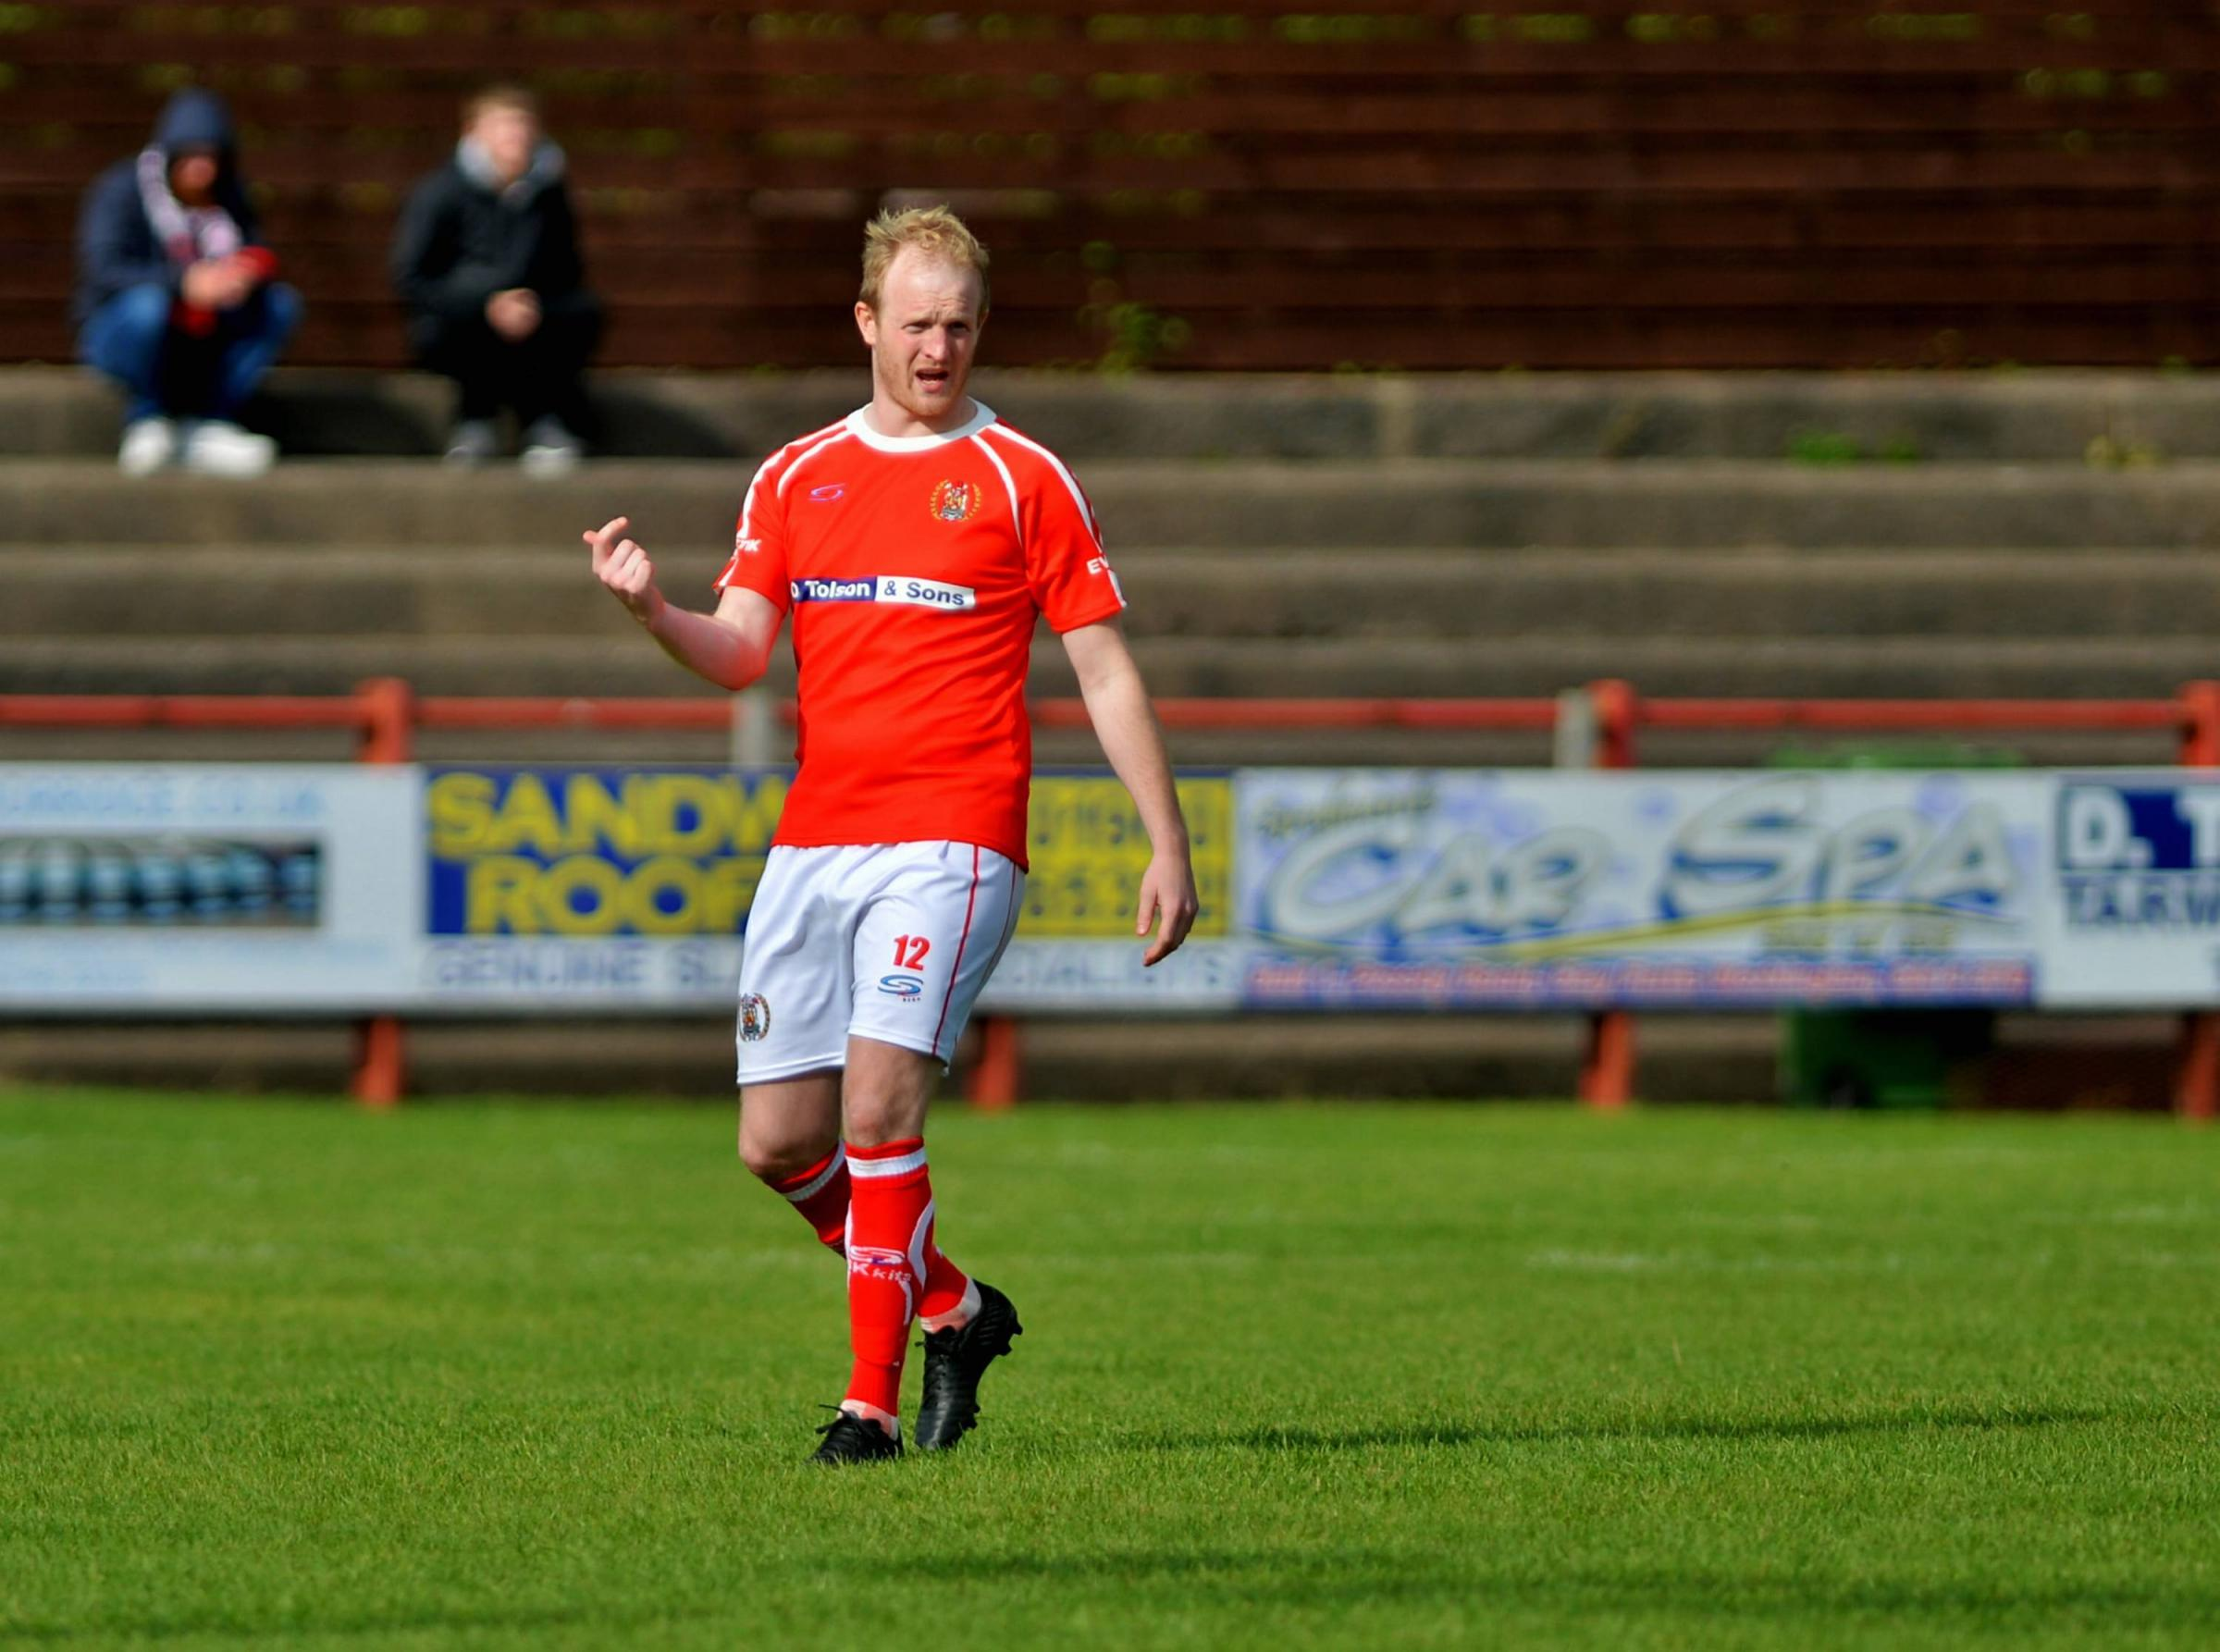 A DOUBT: Reds defender Dan Wordsworth faces a late fitness test ahead of this afternoon's FA Trophy tie